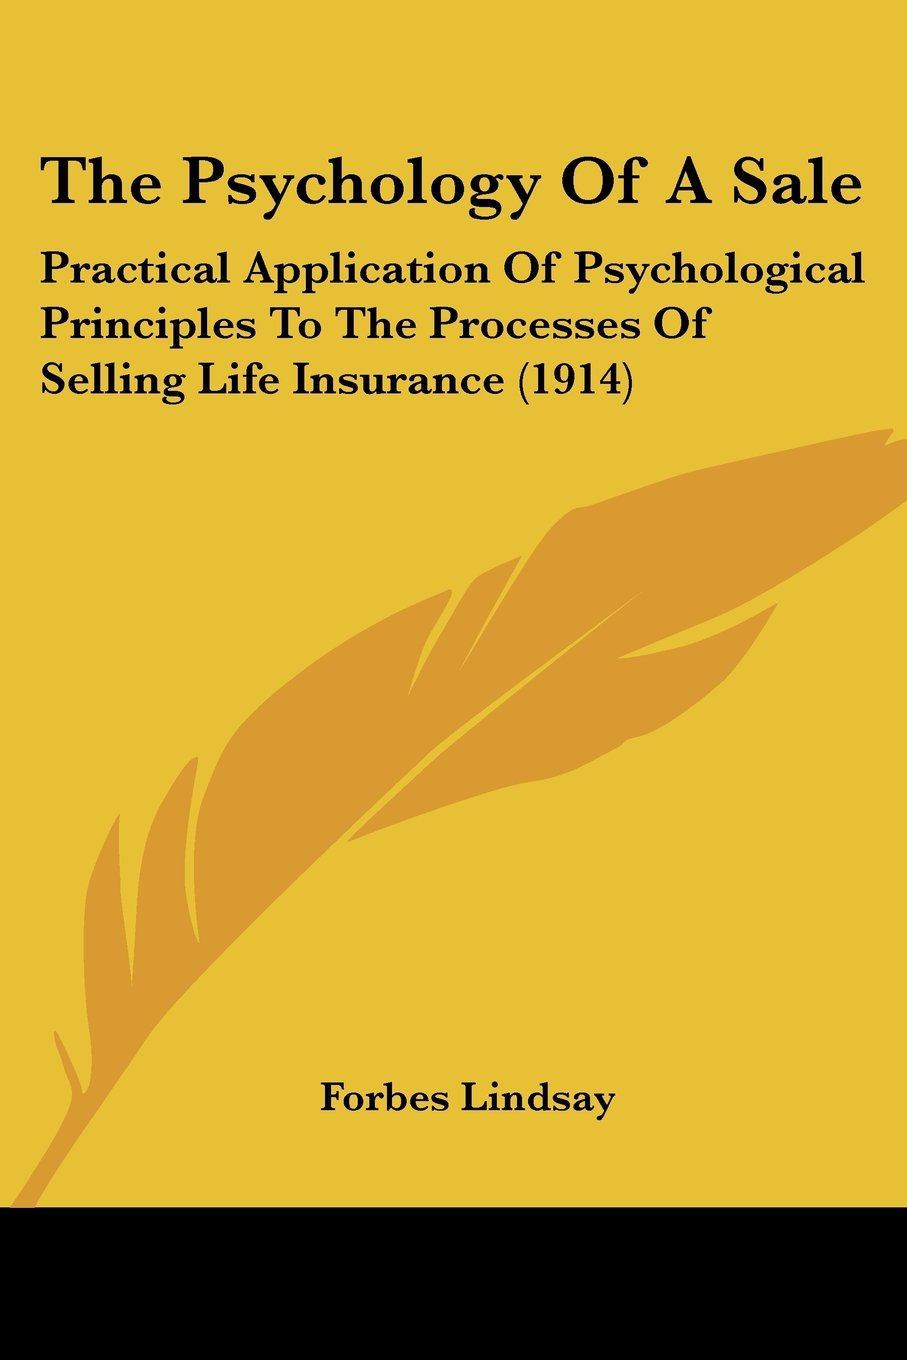 Read Online The Psychology Of A Sale: Practical Application Of Psychological Principles To The Processes Of Selling Life Insurance (1914) PDF